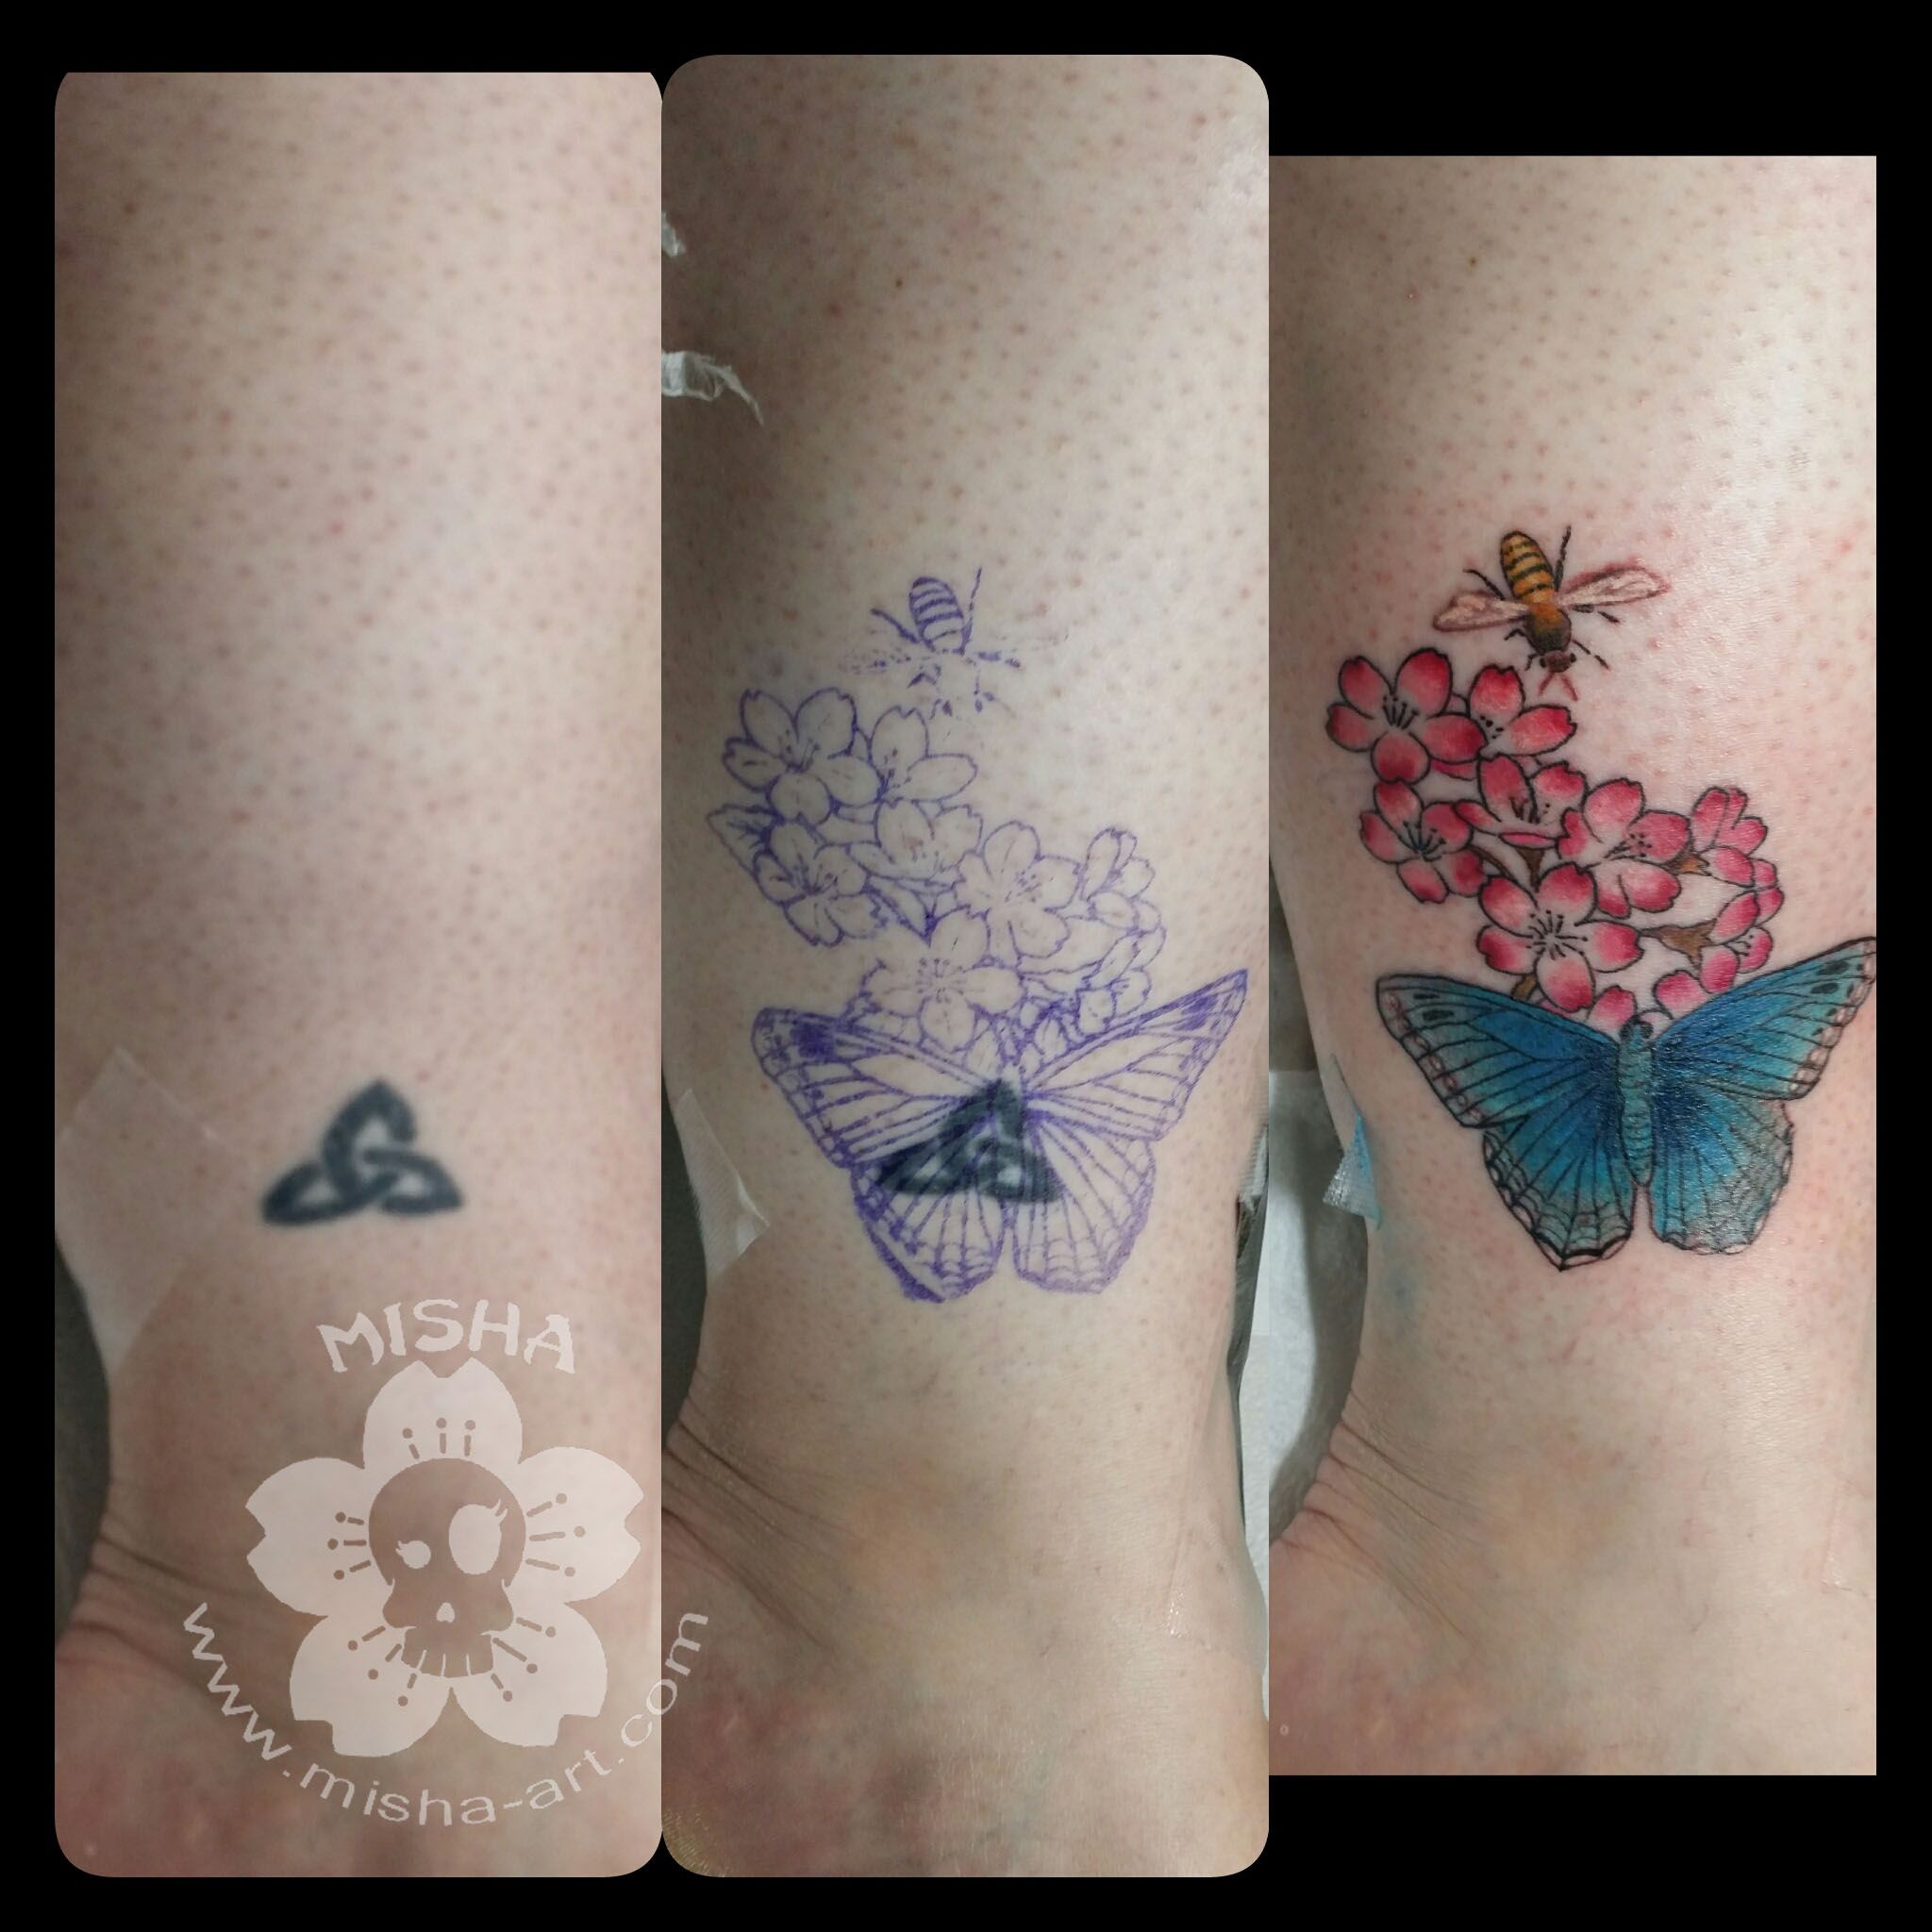 Blue Morpho Butterfly And Cherry Blossoms Cover This Old Tattoo